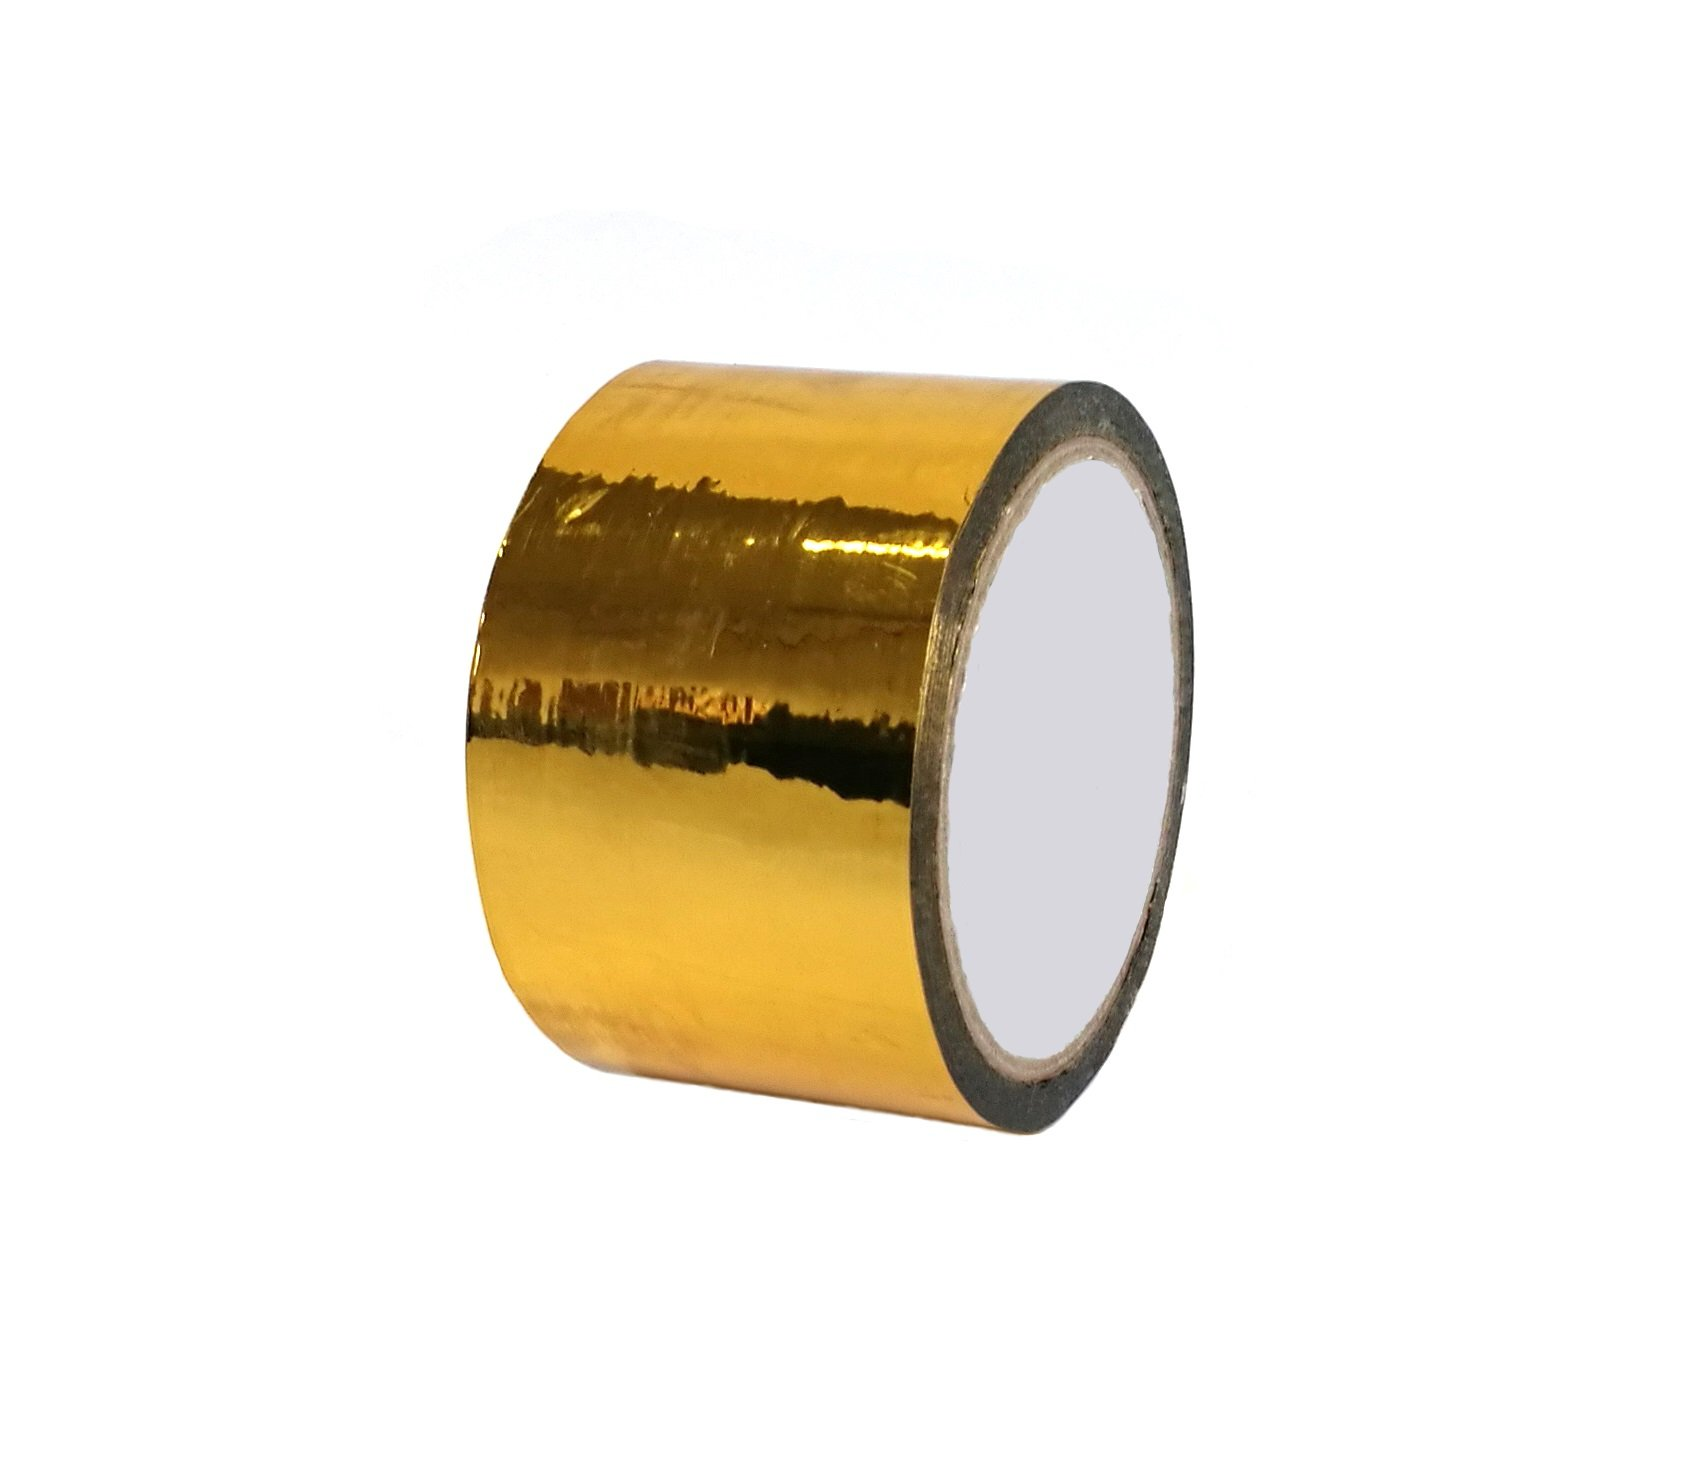 Metallic Tape Mirror Tape Duct Tape DIY Decorative Tapes, 2.4 Inches x 55 Yards (Gold)